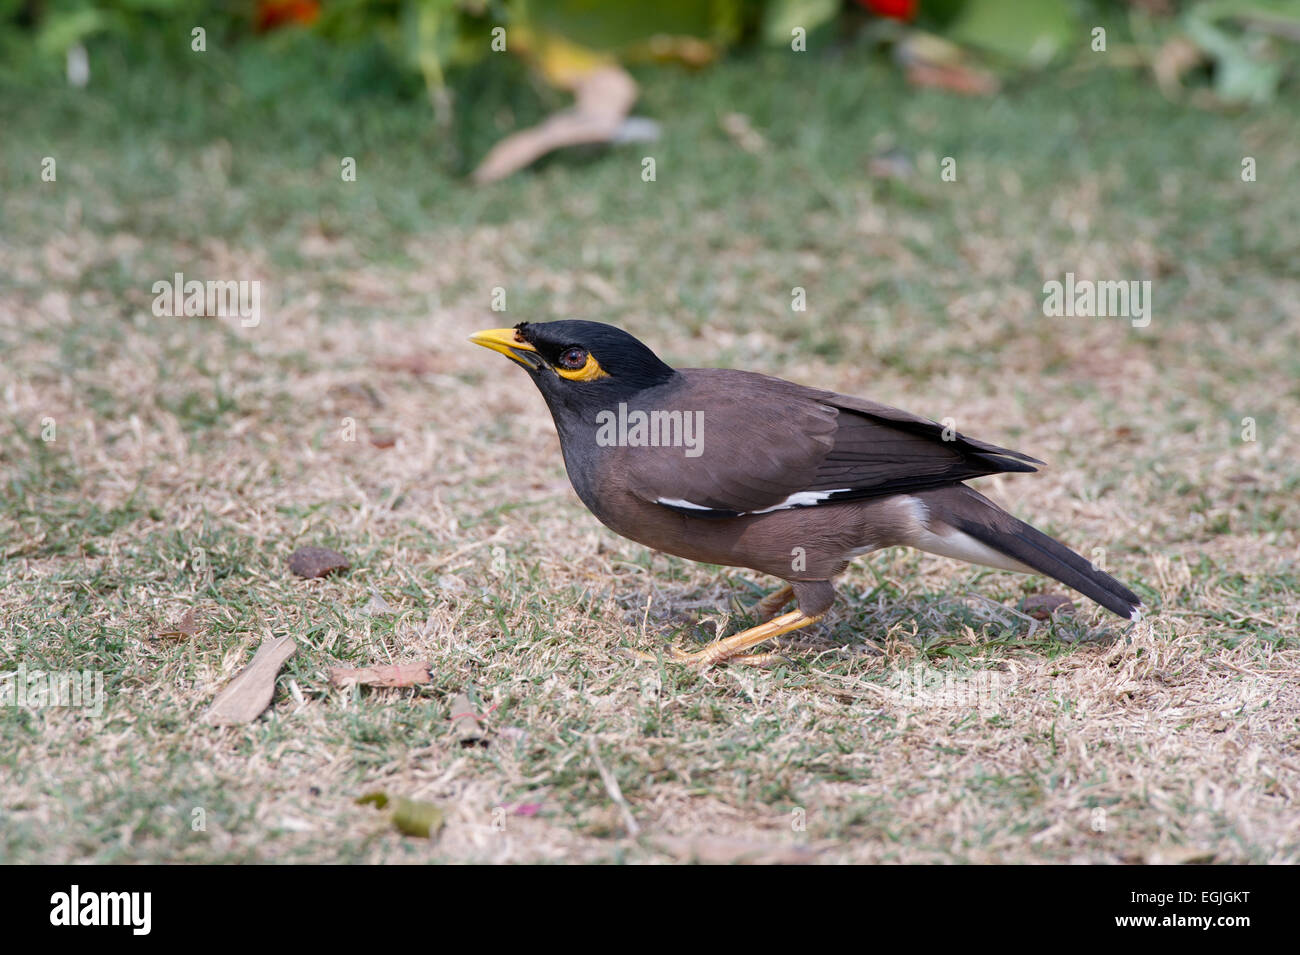 A Common Myna (Acridotheres tristis) foraging for food in Lodi Gardens in New Delhi, India - Stock Image